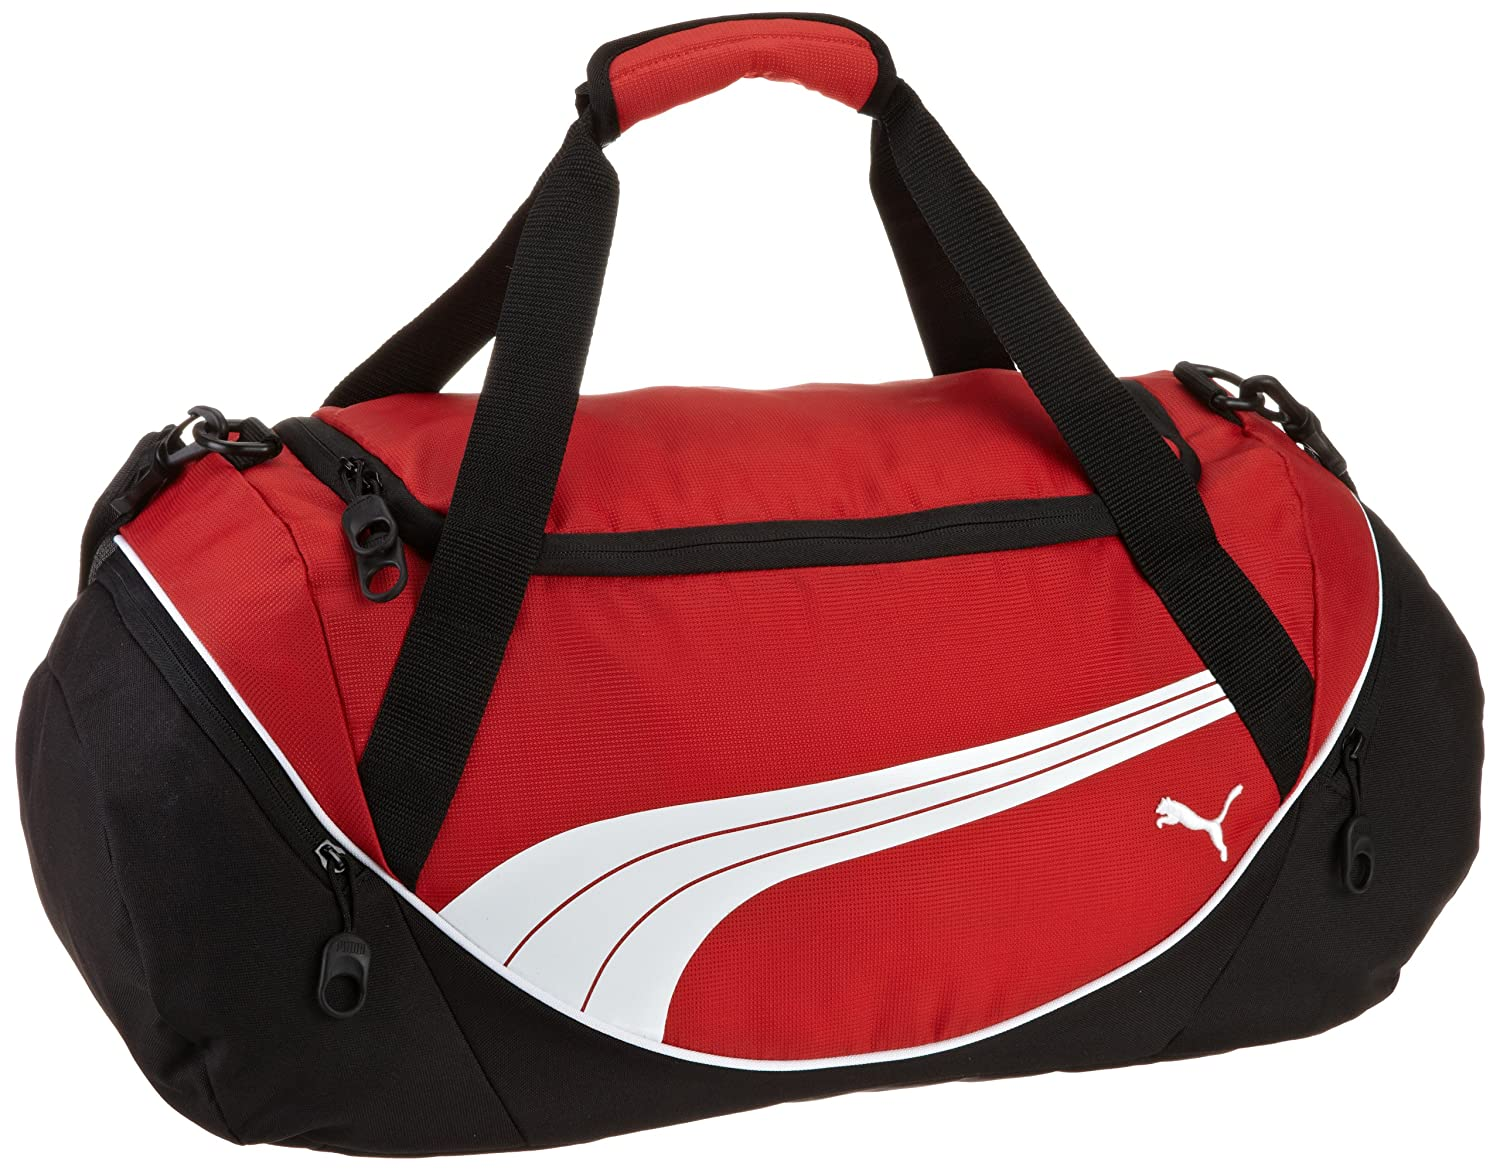 Puma Men 's Teamsport Formation 24 Inch Duffel Bag B005LCEKJY  レッド One Size